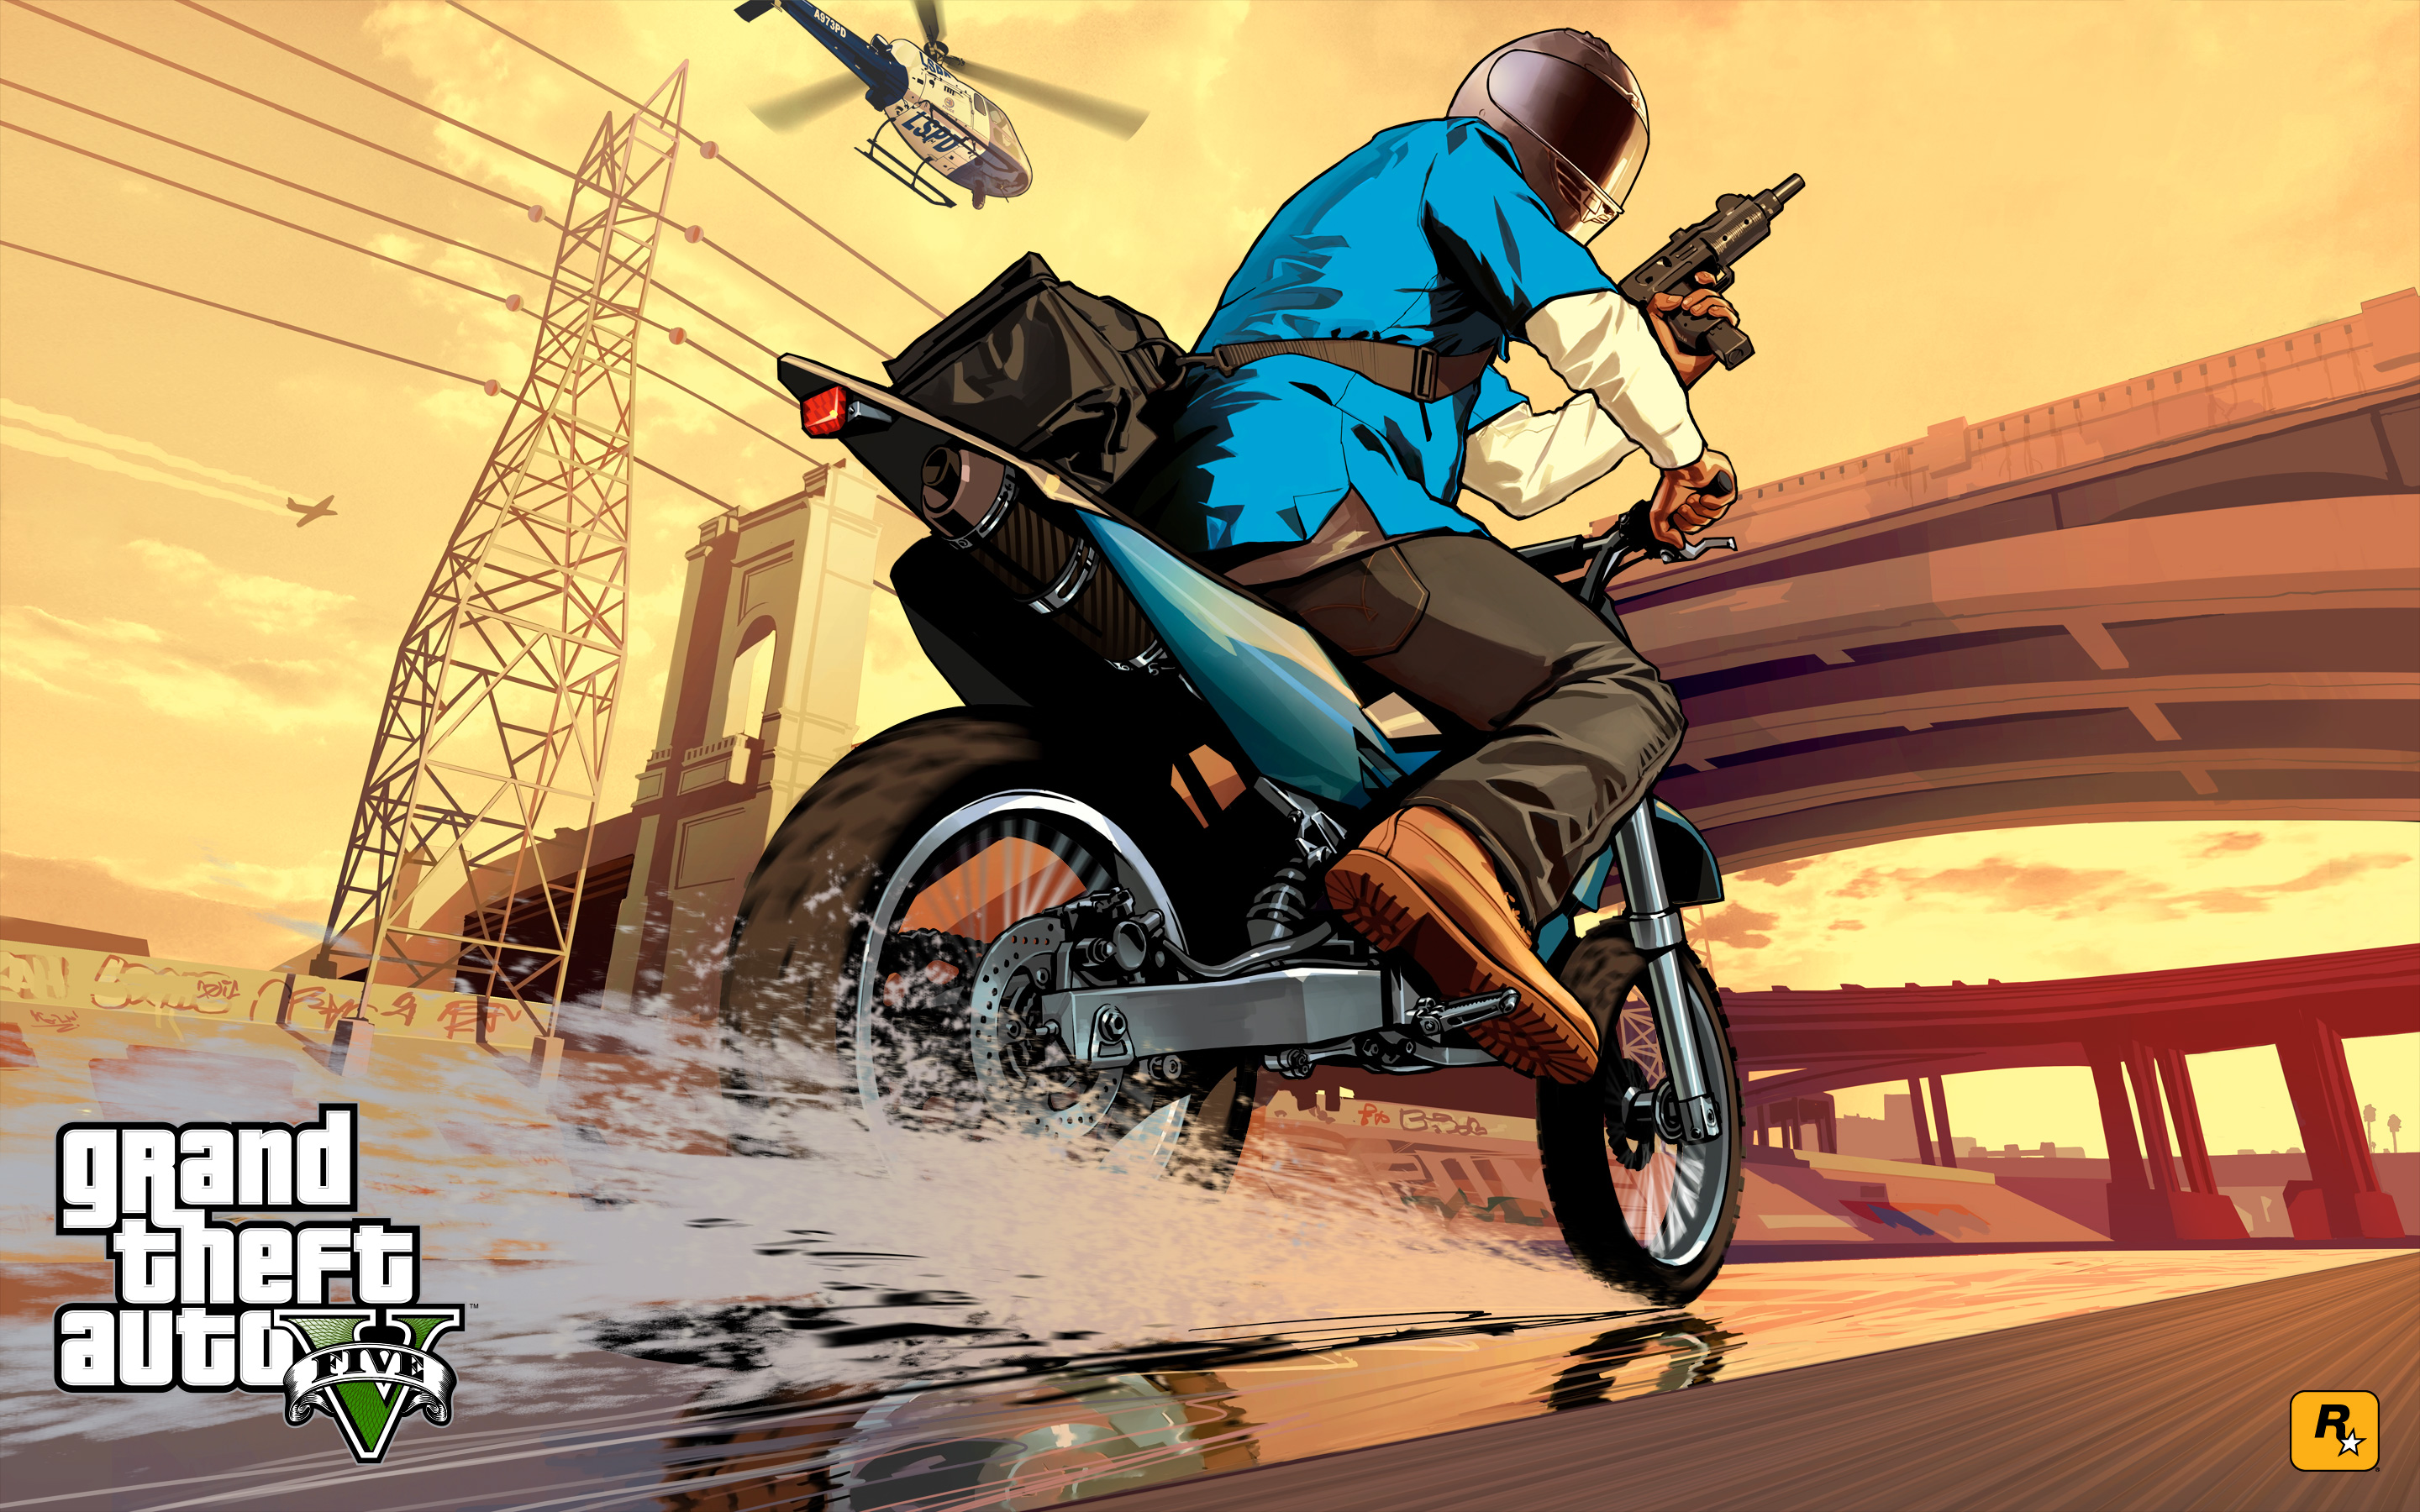 gtav artwork: jetski and sanchez